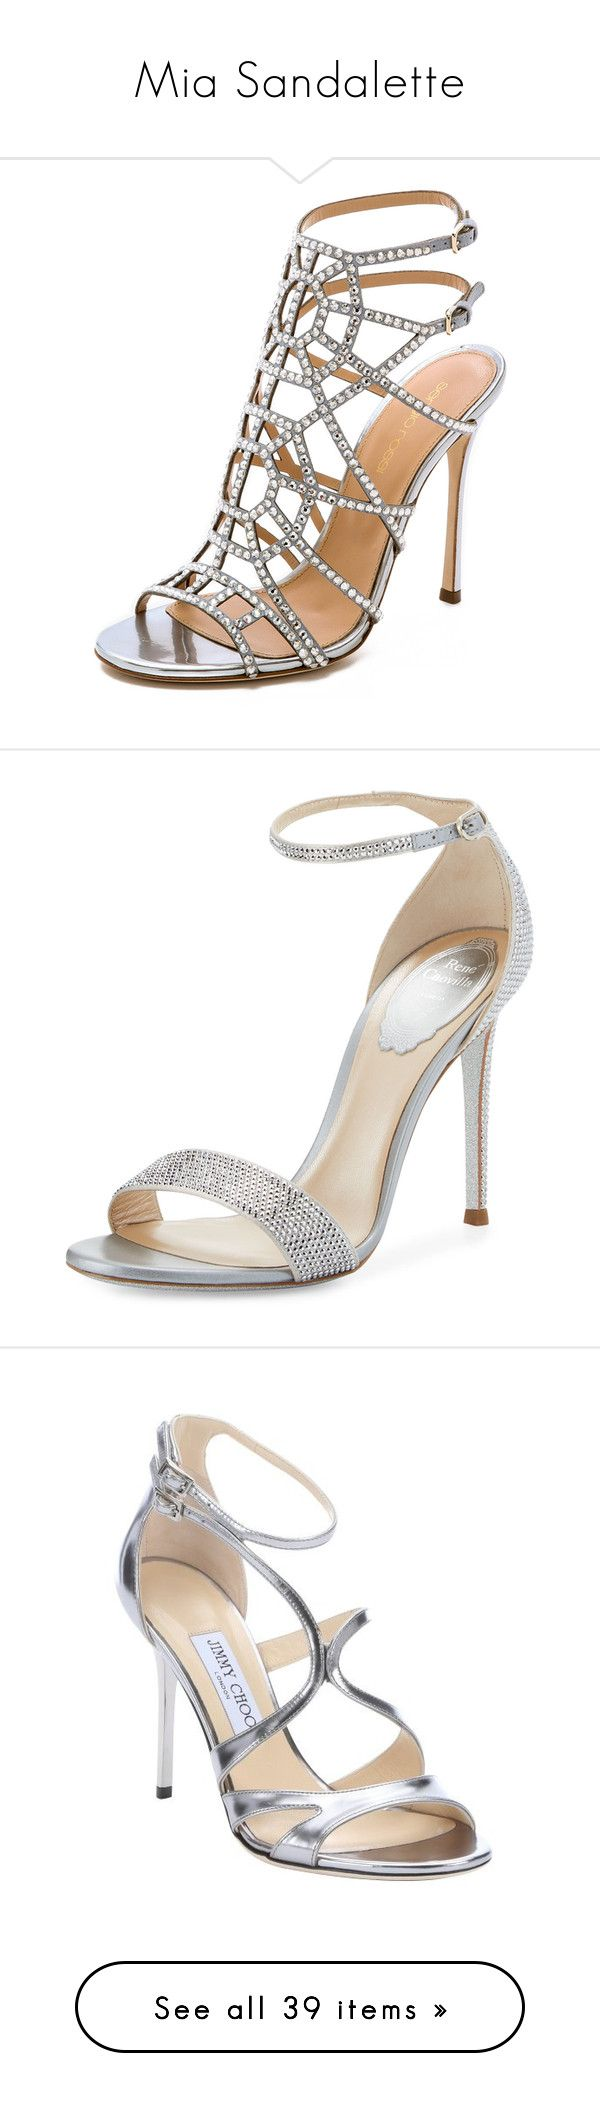 """""""Mia Sandalette"""" by kleinesbiest ❤ liked on Polyvore featuring shoes, sandals, heels, sapatos, high heels, silver, ankle strap high heel sandals, heeled sandals, high heel sandals and high heeled footwear"""